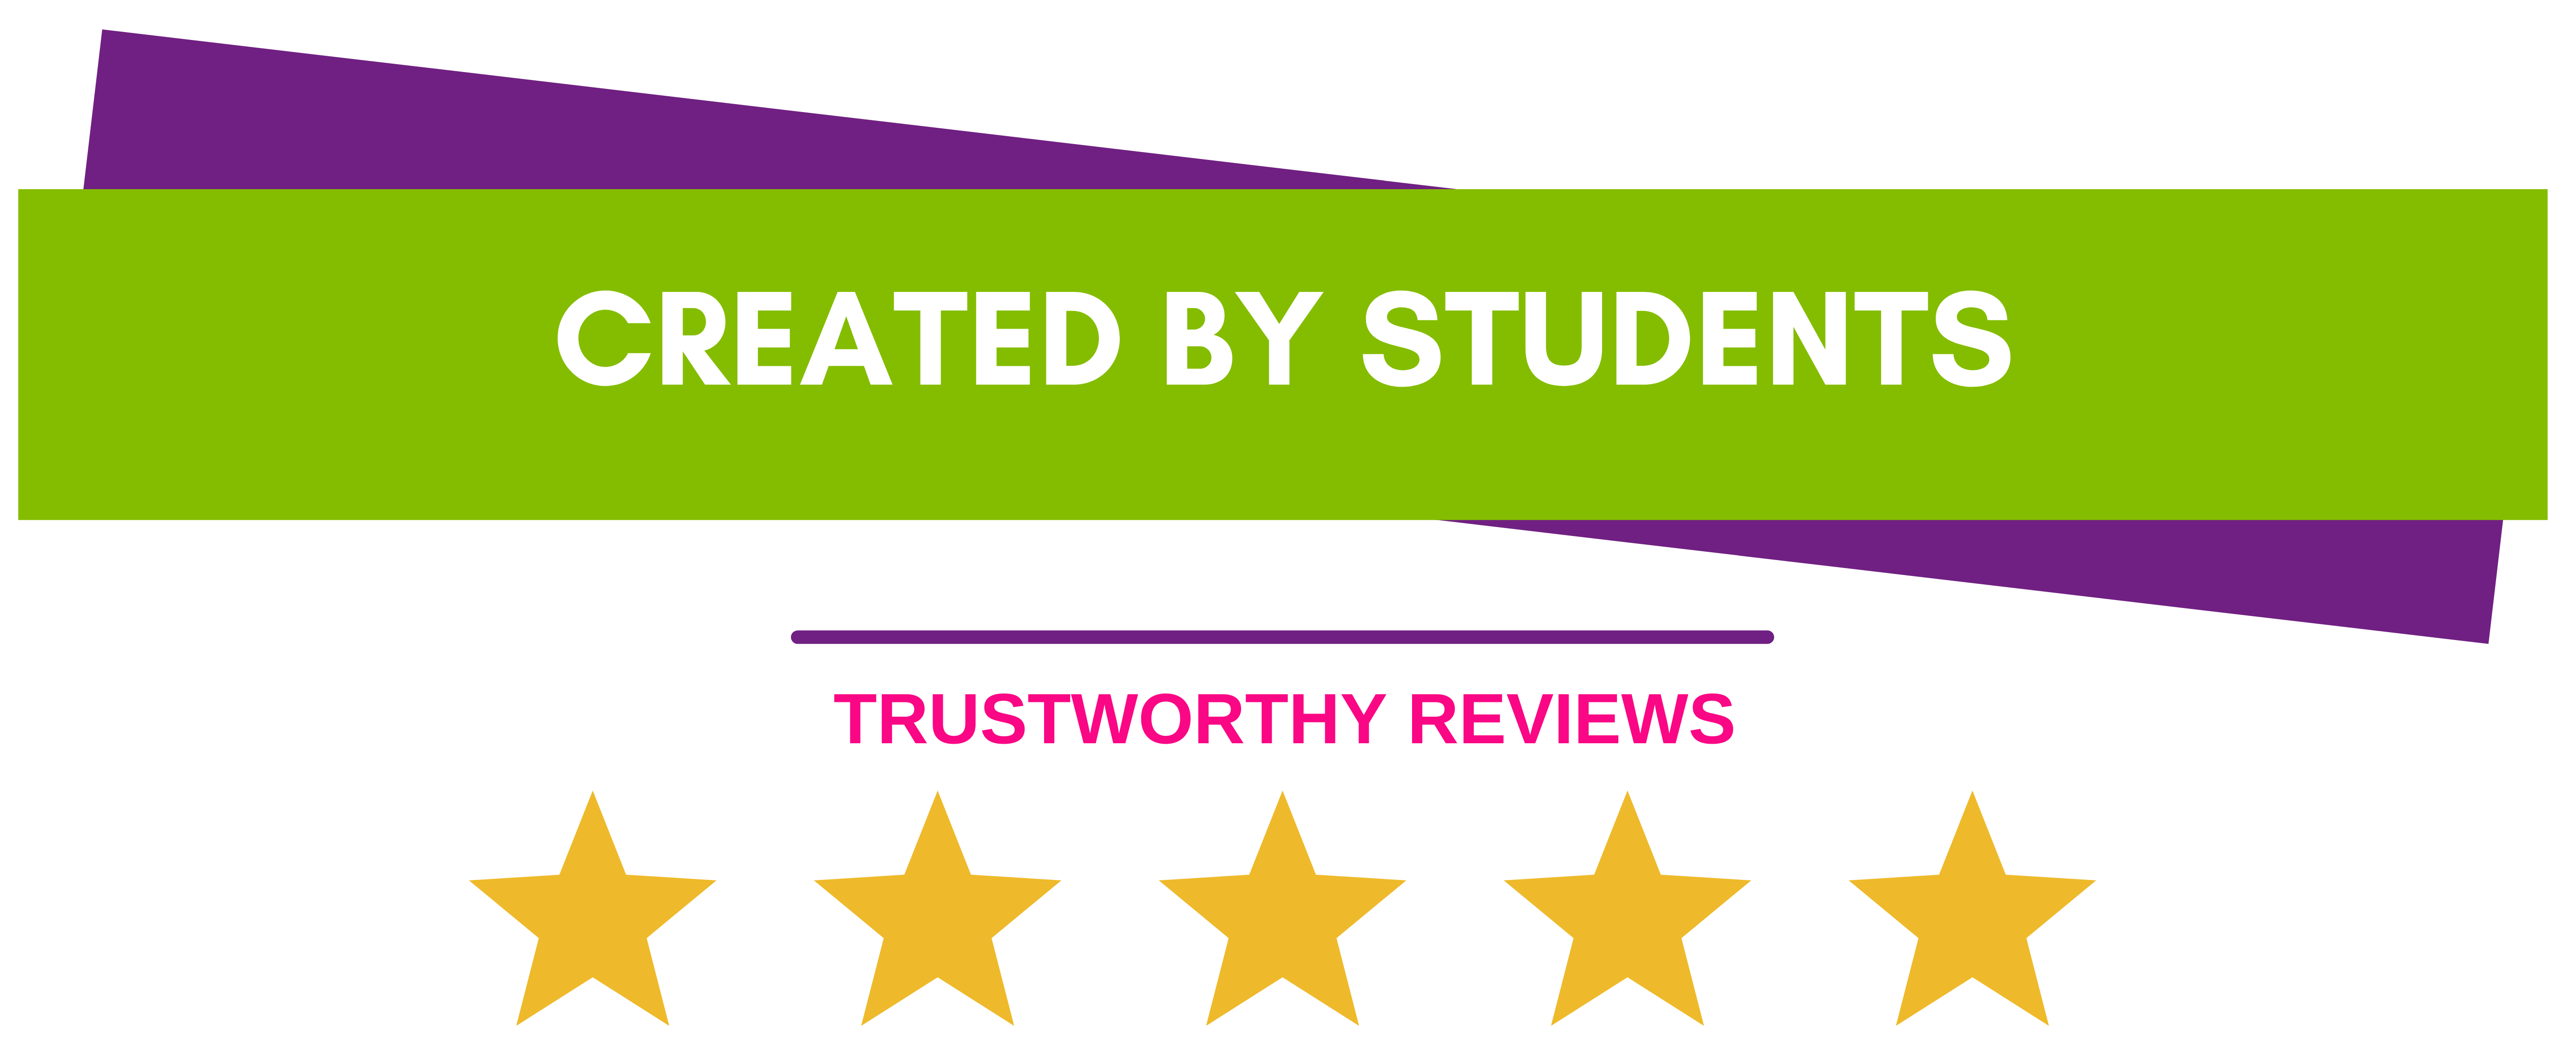 Dream-Team-Team-Stand-Up-Loyal-Students-Trustworthy-Reviews-Assuaged (1)